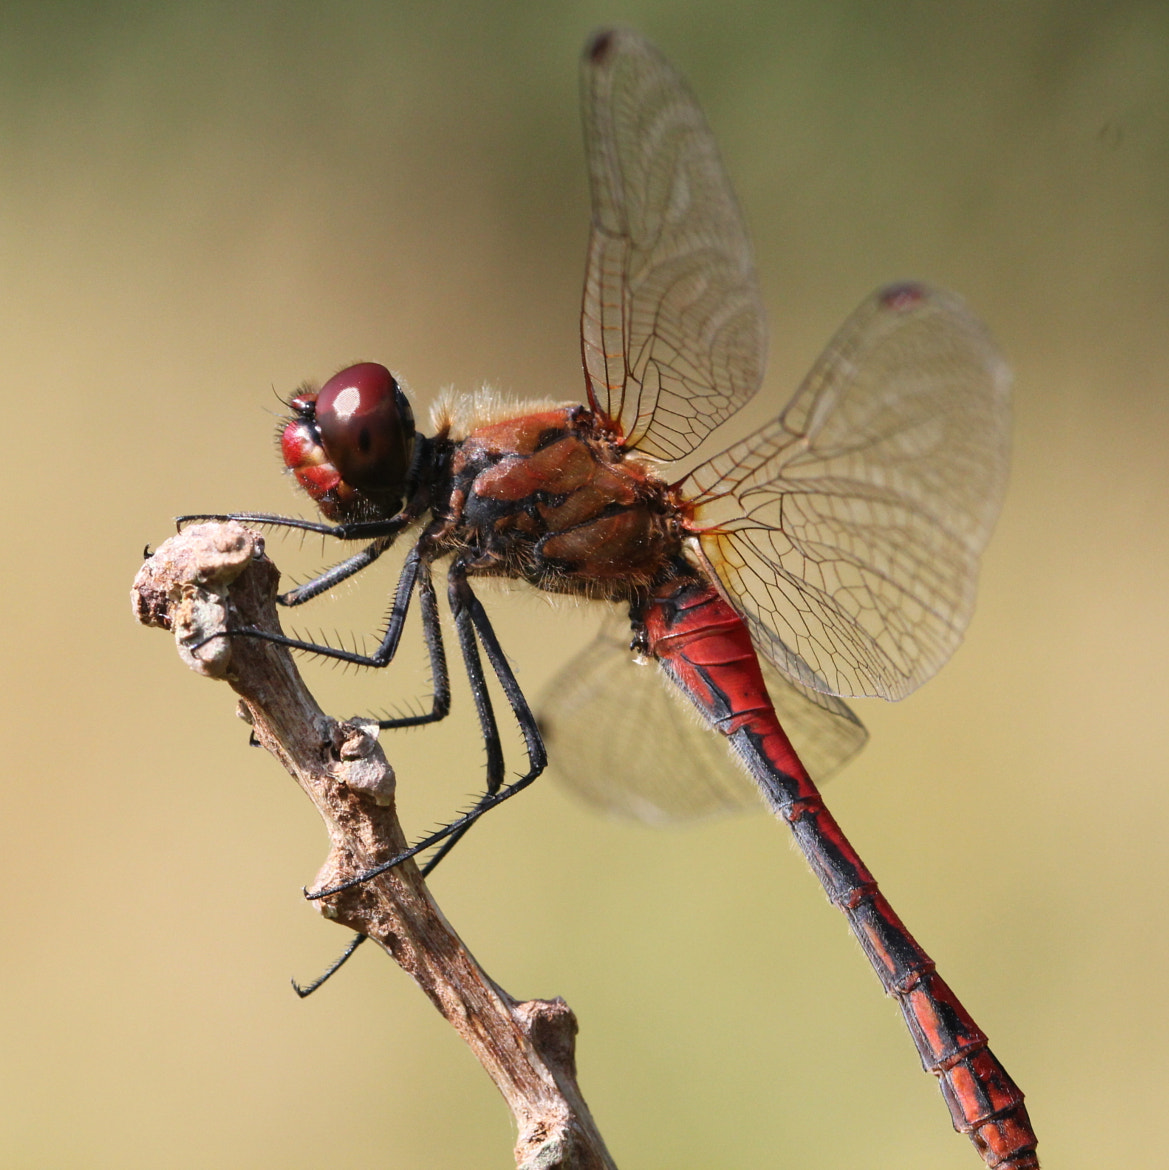 Photograph Ruddy Darter Dragonfly by Ger Bosma on 500px